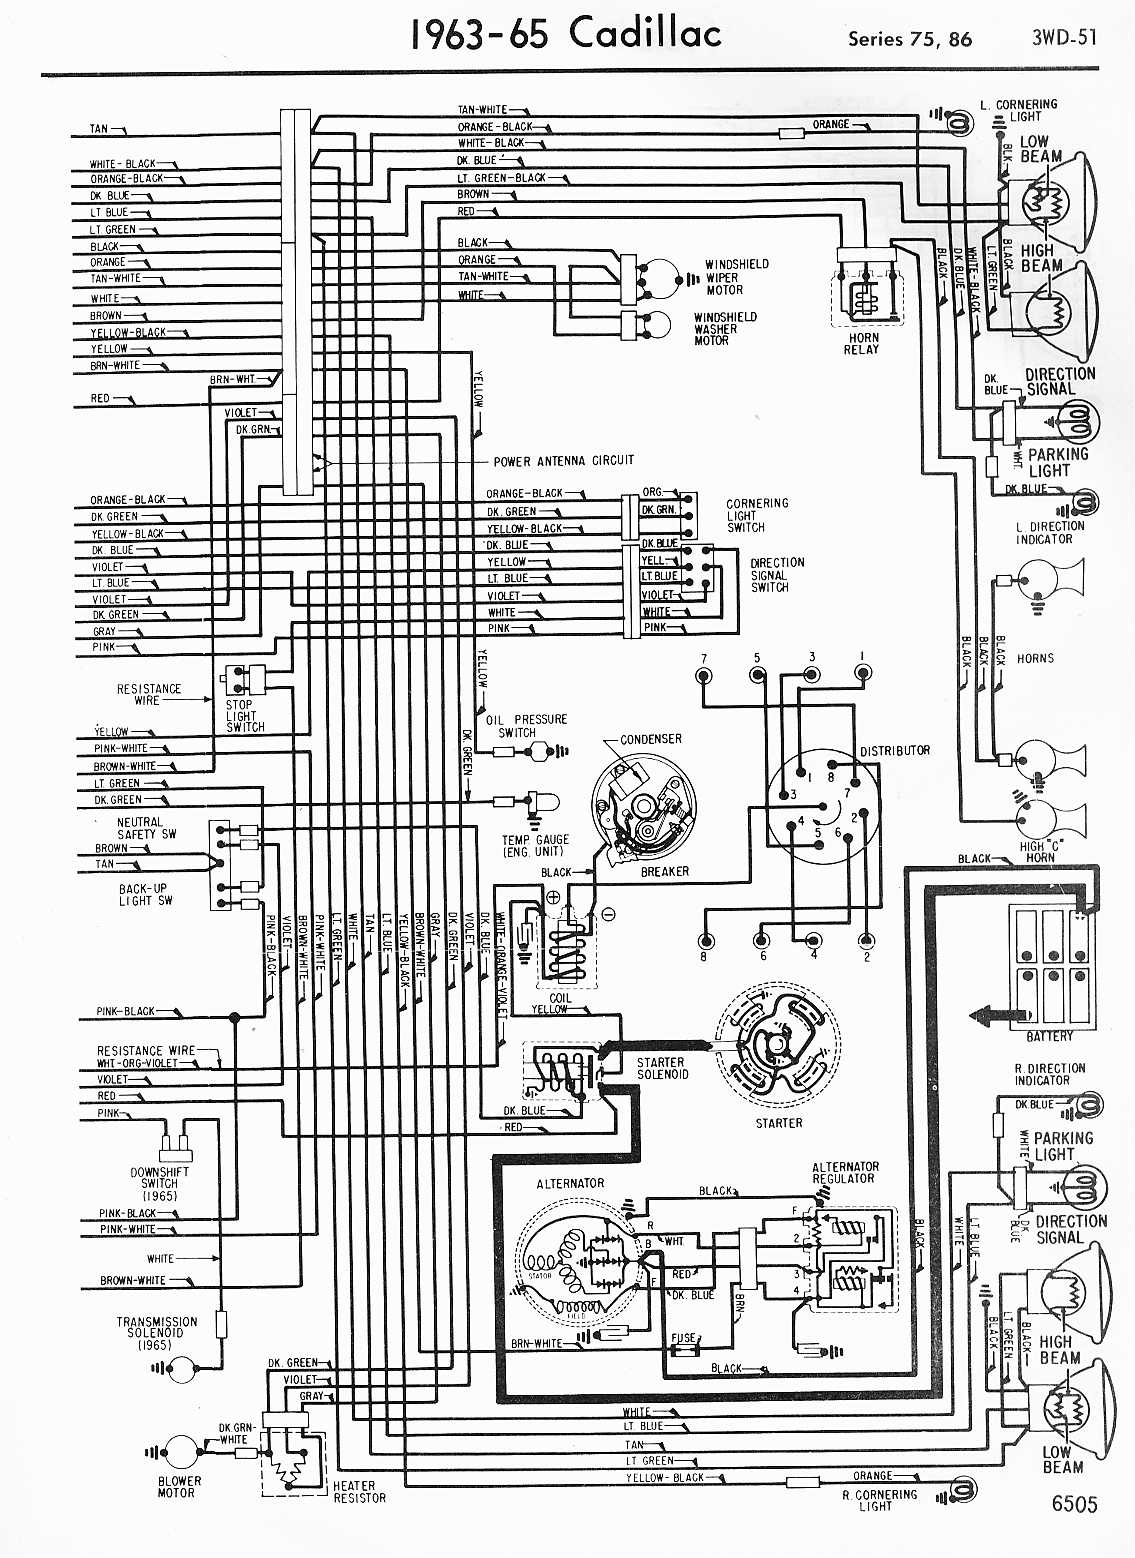 windows wiring diagram of 1964 cadillac wire data schema u2022 rh kiymik co 1964 Avanti Colors 1961 Avanti